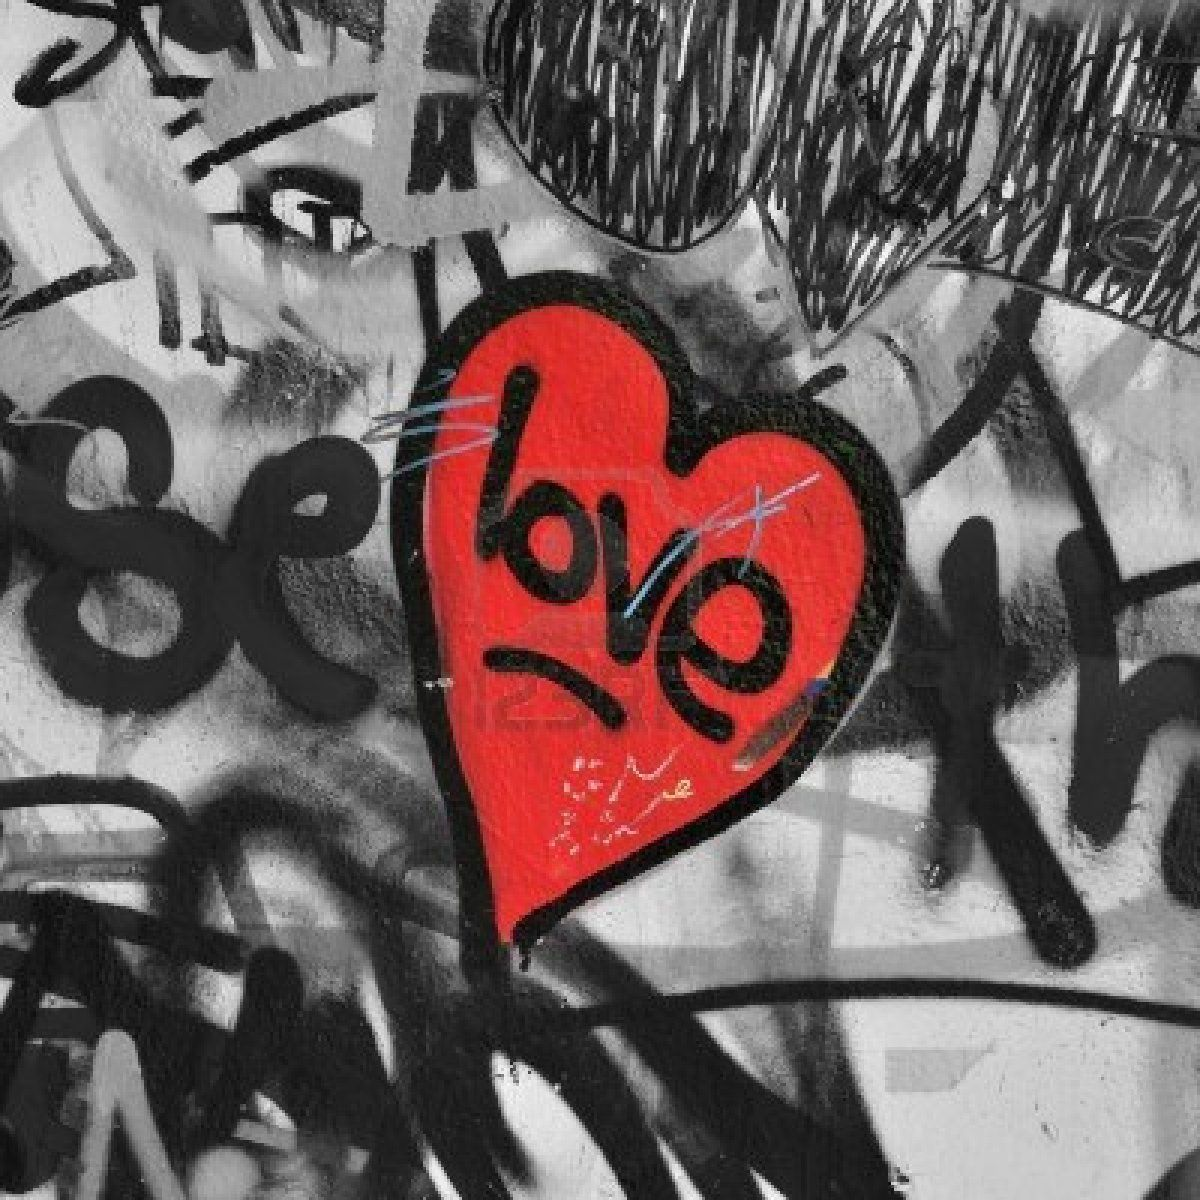 Red Painted Love Heart On Graffiti Covered Black And White Wall